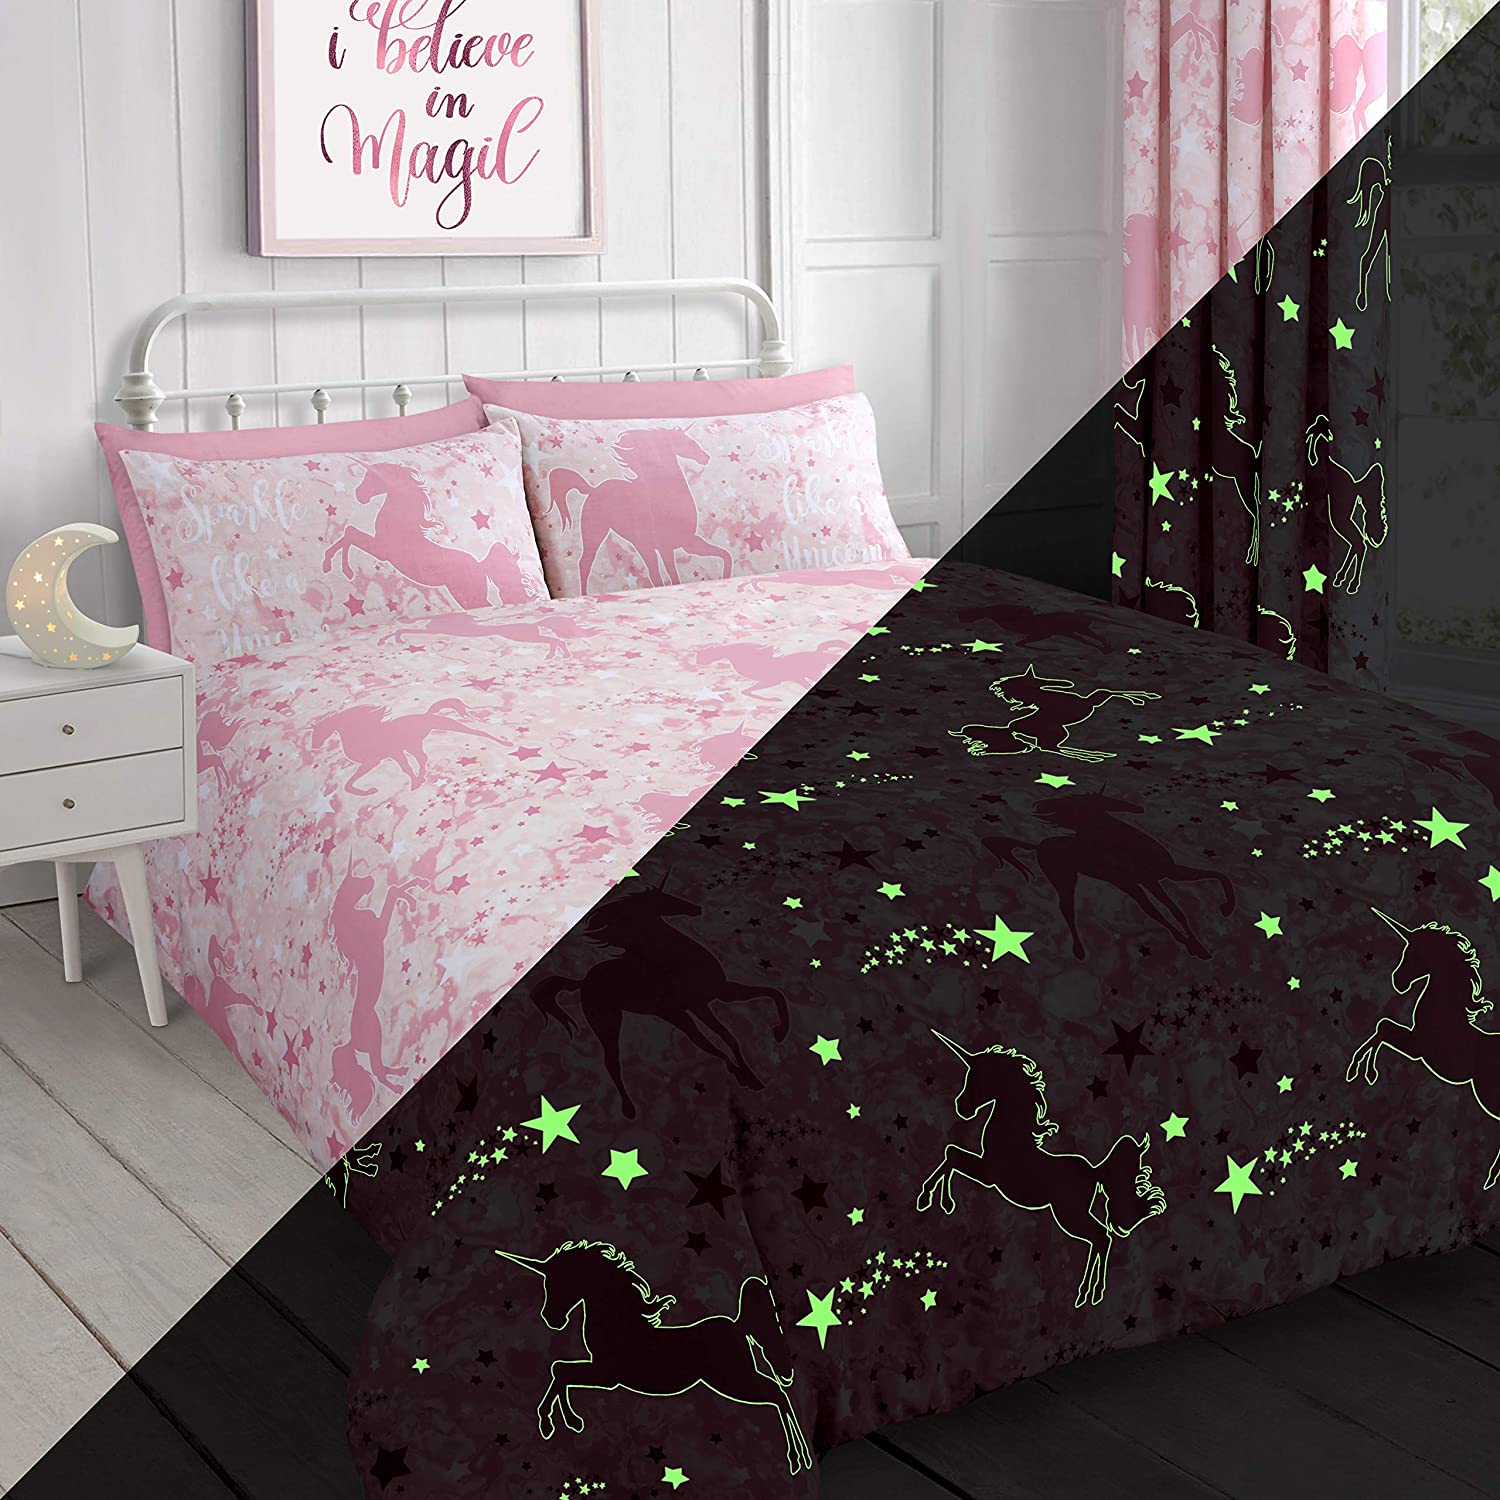 Unicorn-Stars-Magical-Duvet-Cover-Bedding-Set